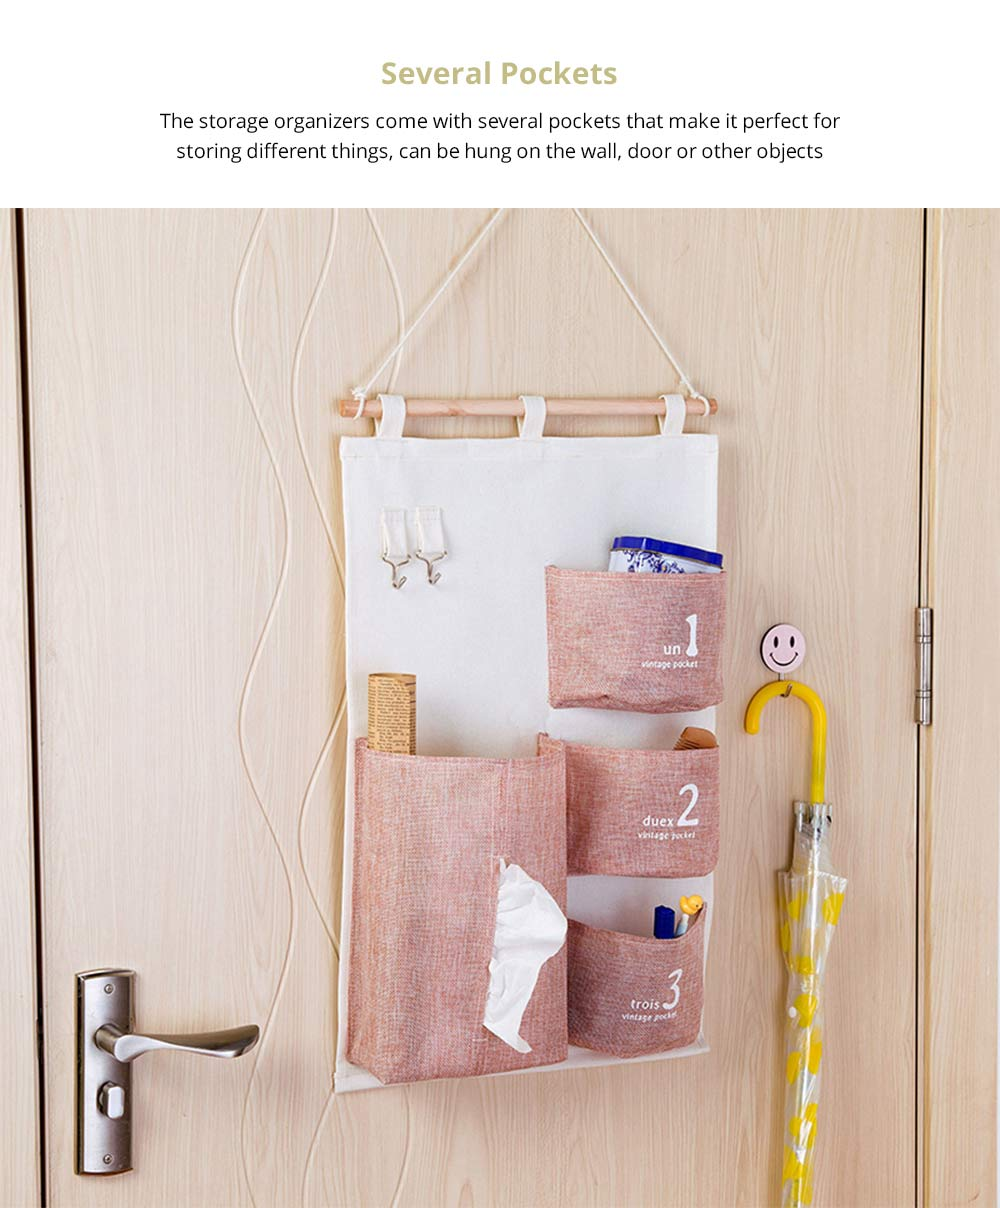 Hanging Organizer Bag Compatible with Bathroom Bedroom Kitchen Wall